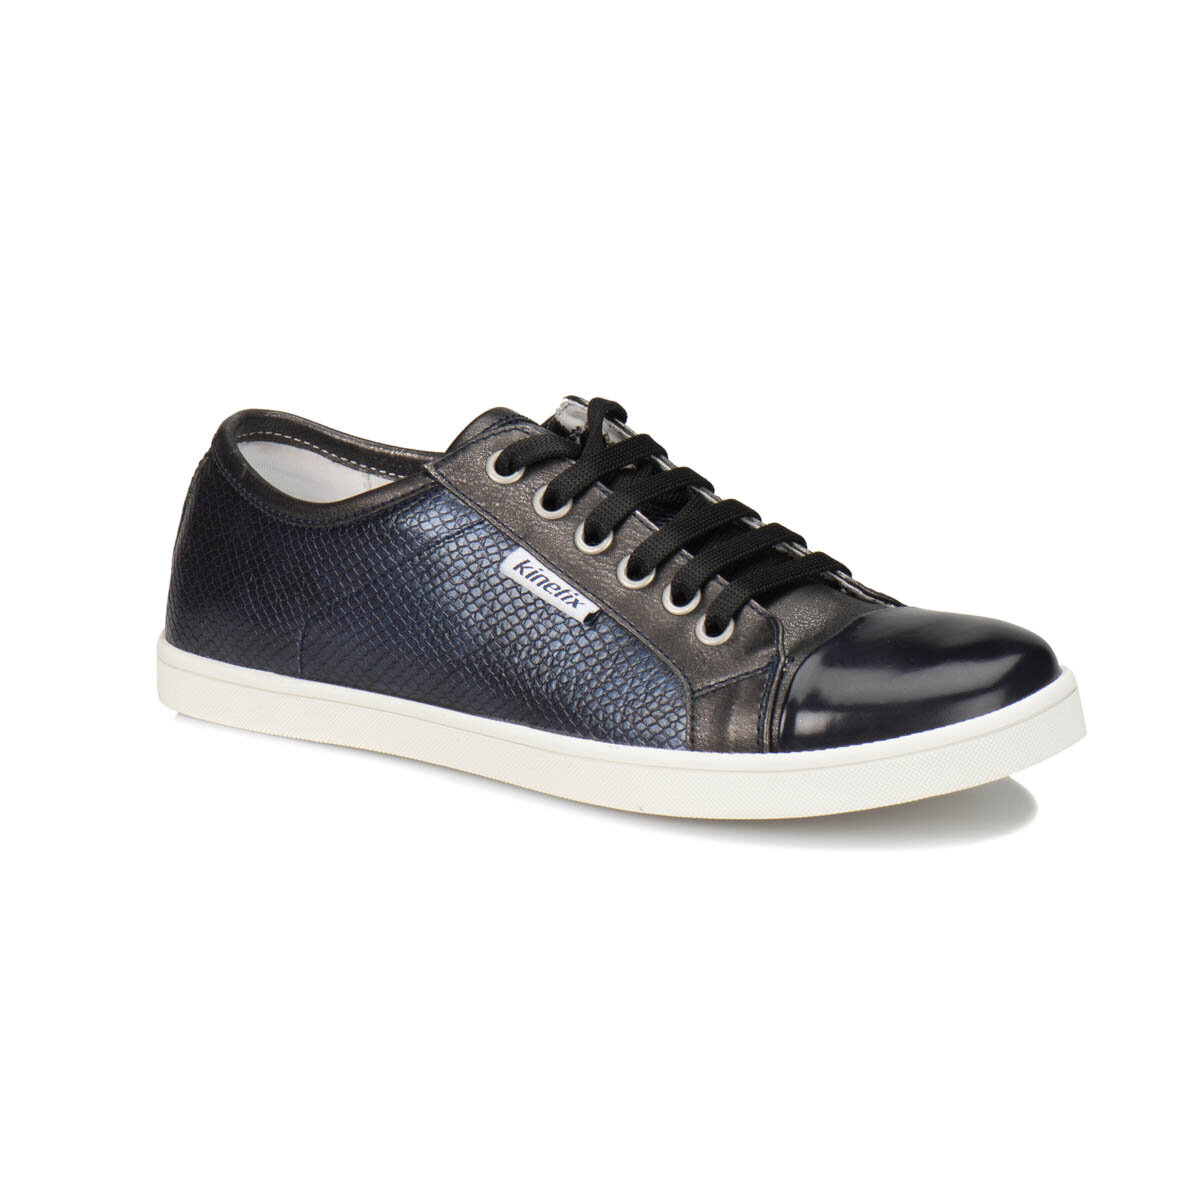 FLO MARCY Navy Blue Women 'S Sneaker Shoes KINETIX